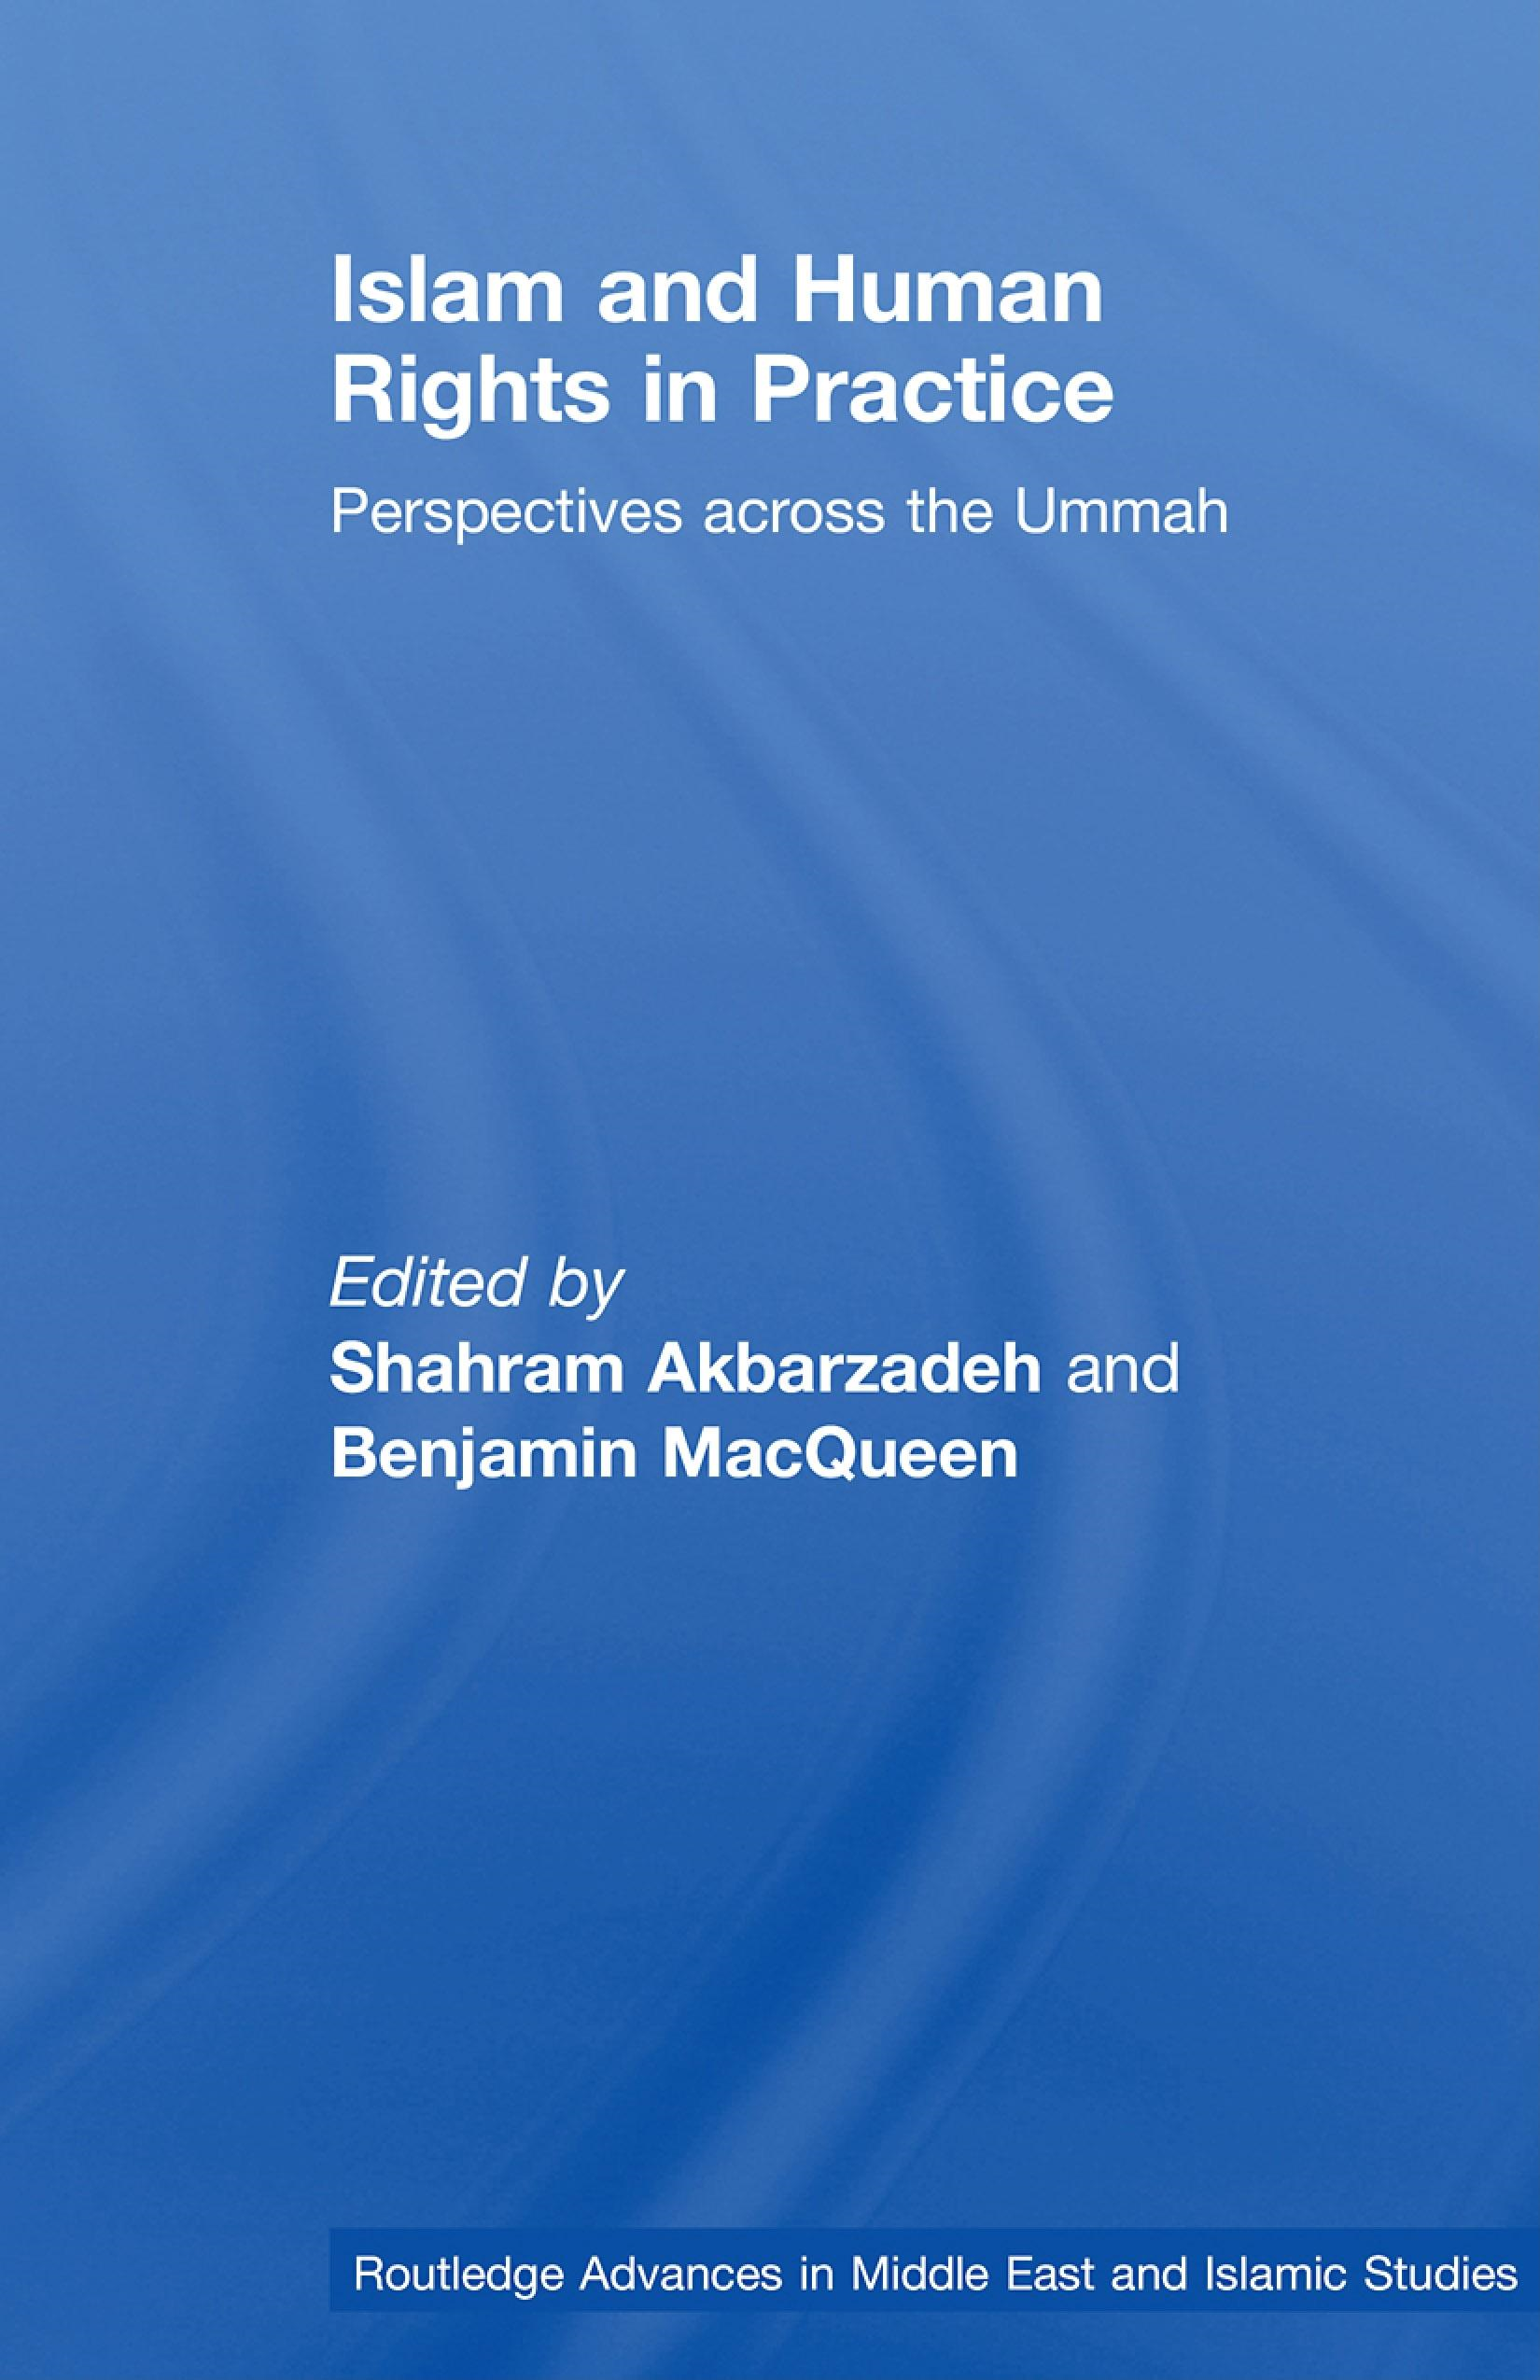 Islam and Human Rights in Practice: Perspectives Across the Ummah